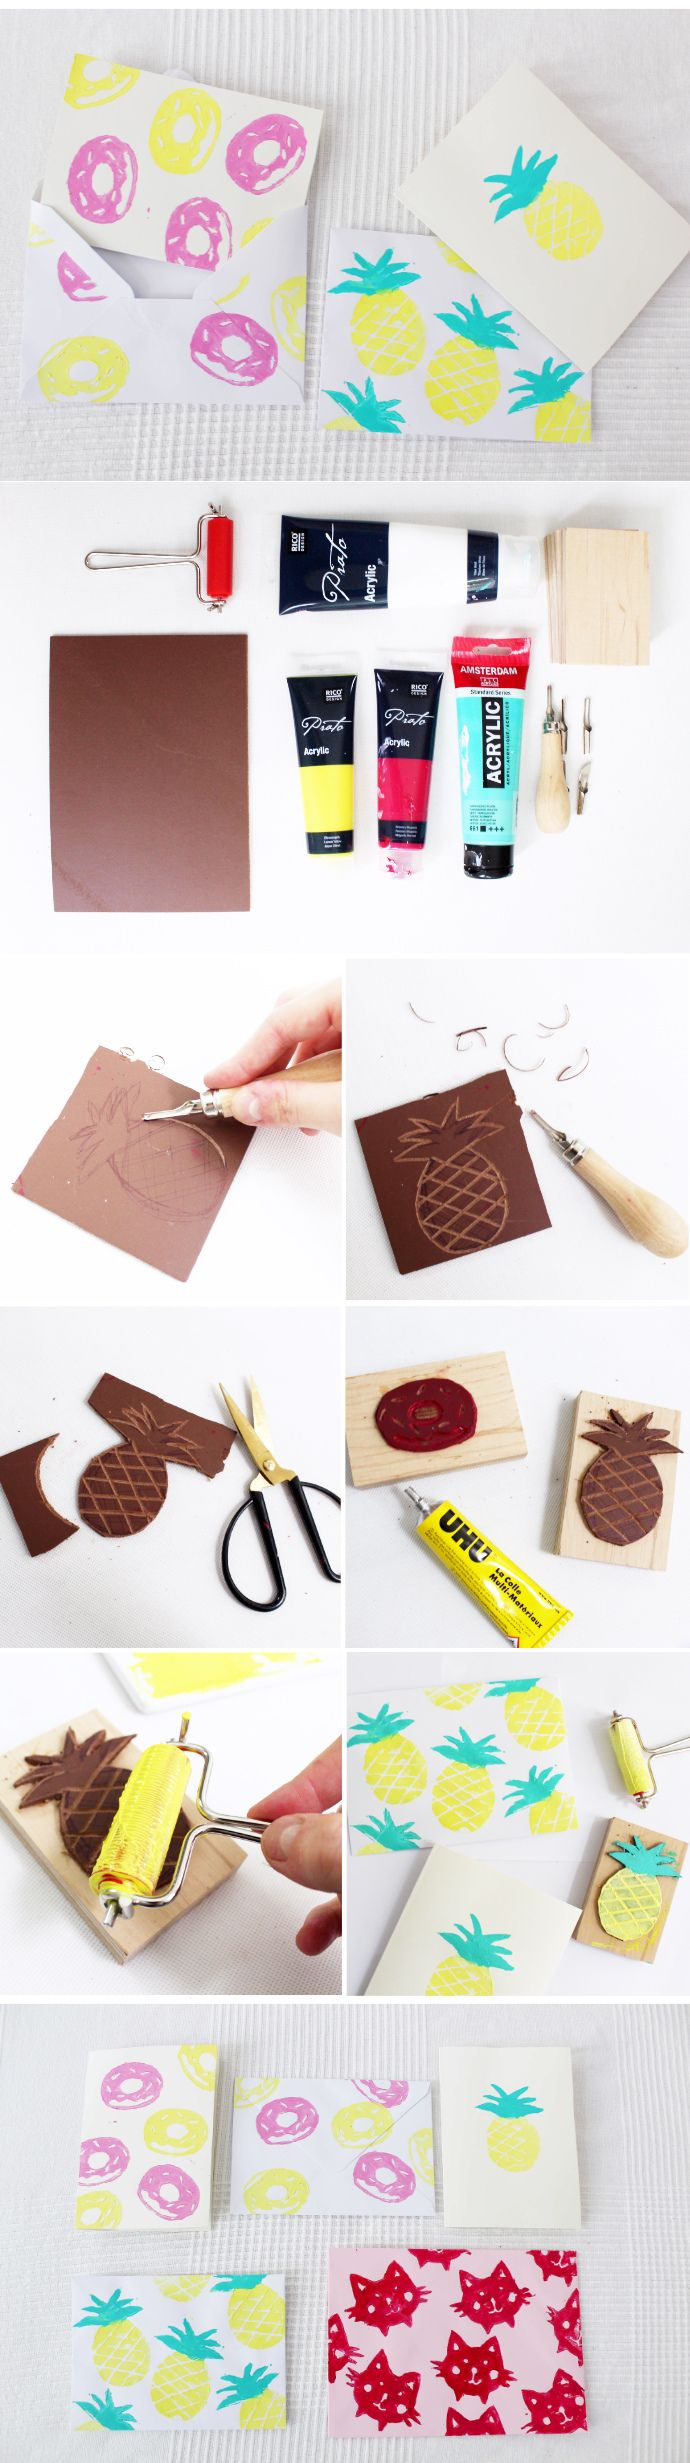 DIY tutorial: How to make pineapple and donut stamps